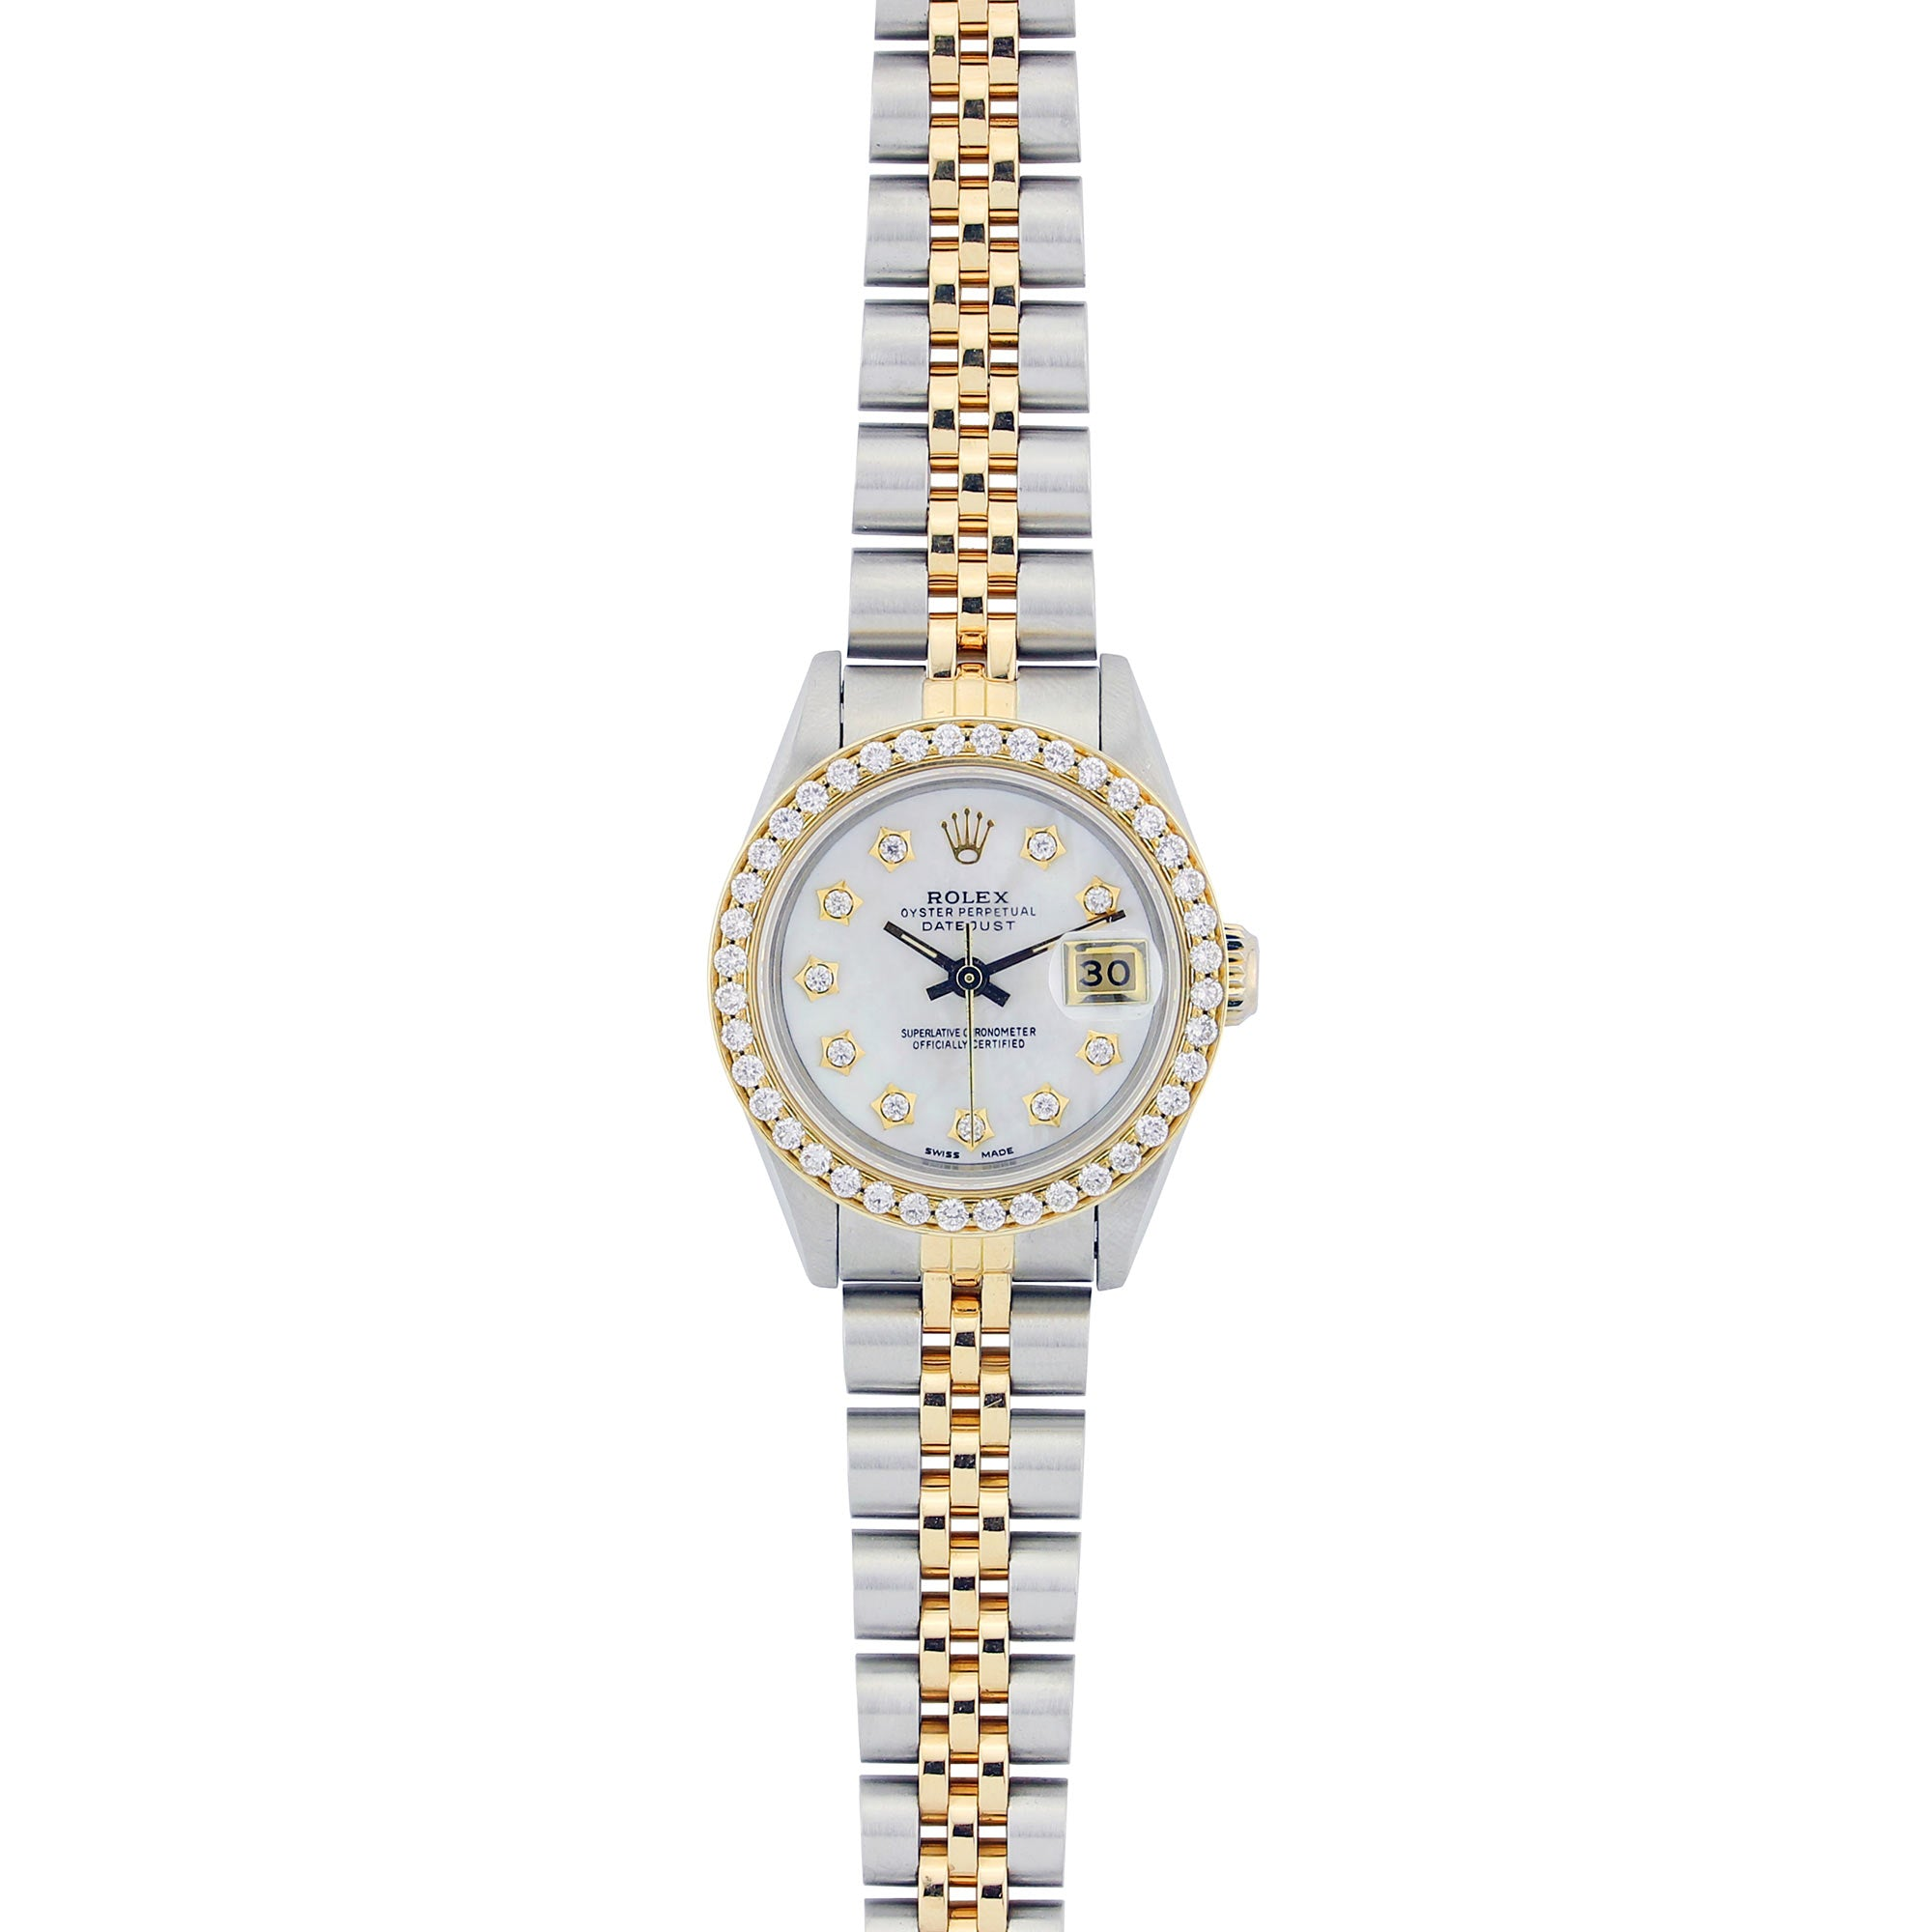 Vintage Two Tone Rolex Ladies Datejust Diamond Watch, 6917 26mm,